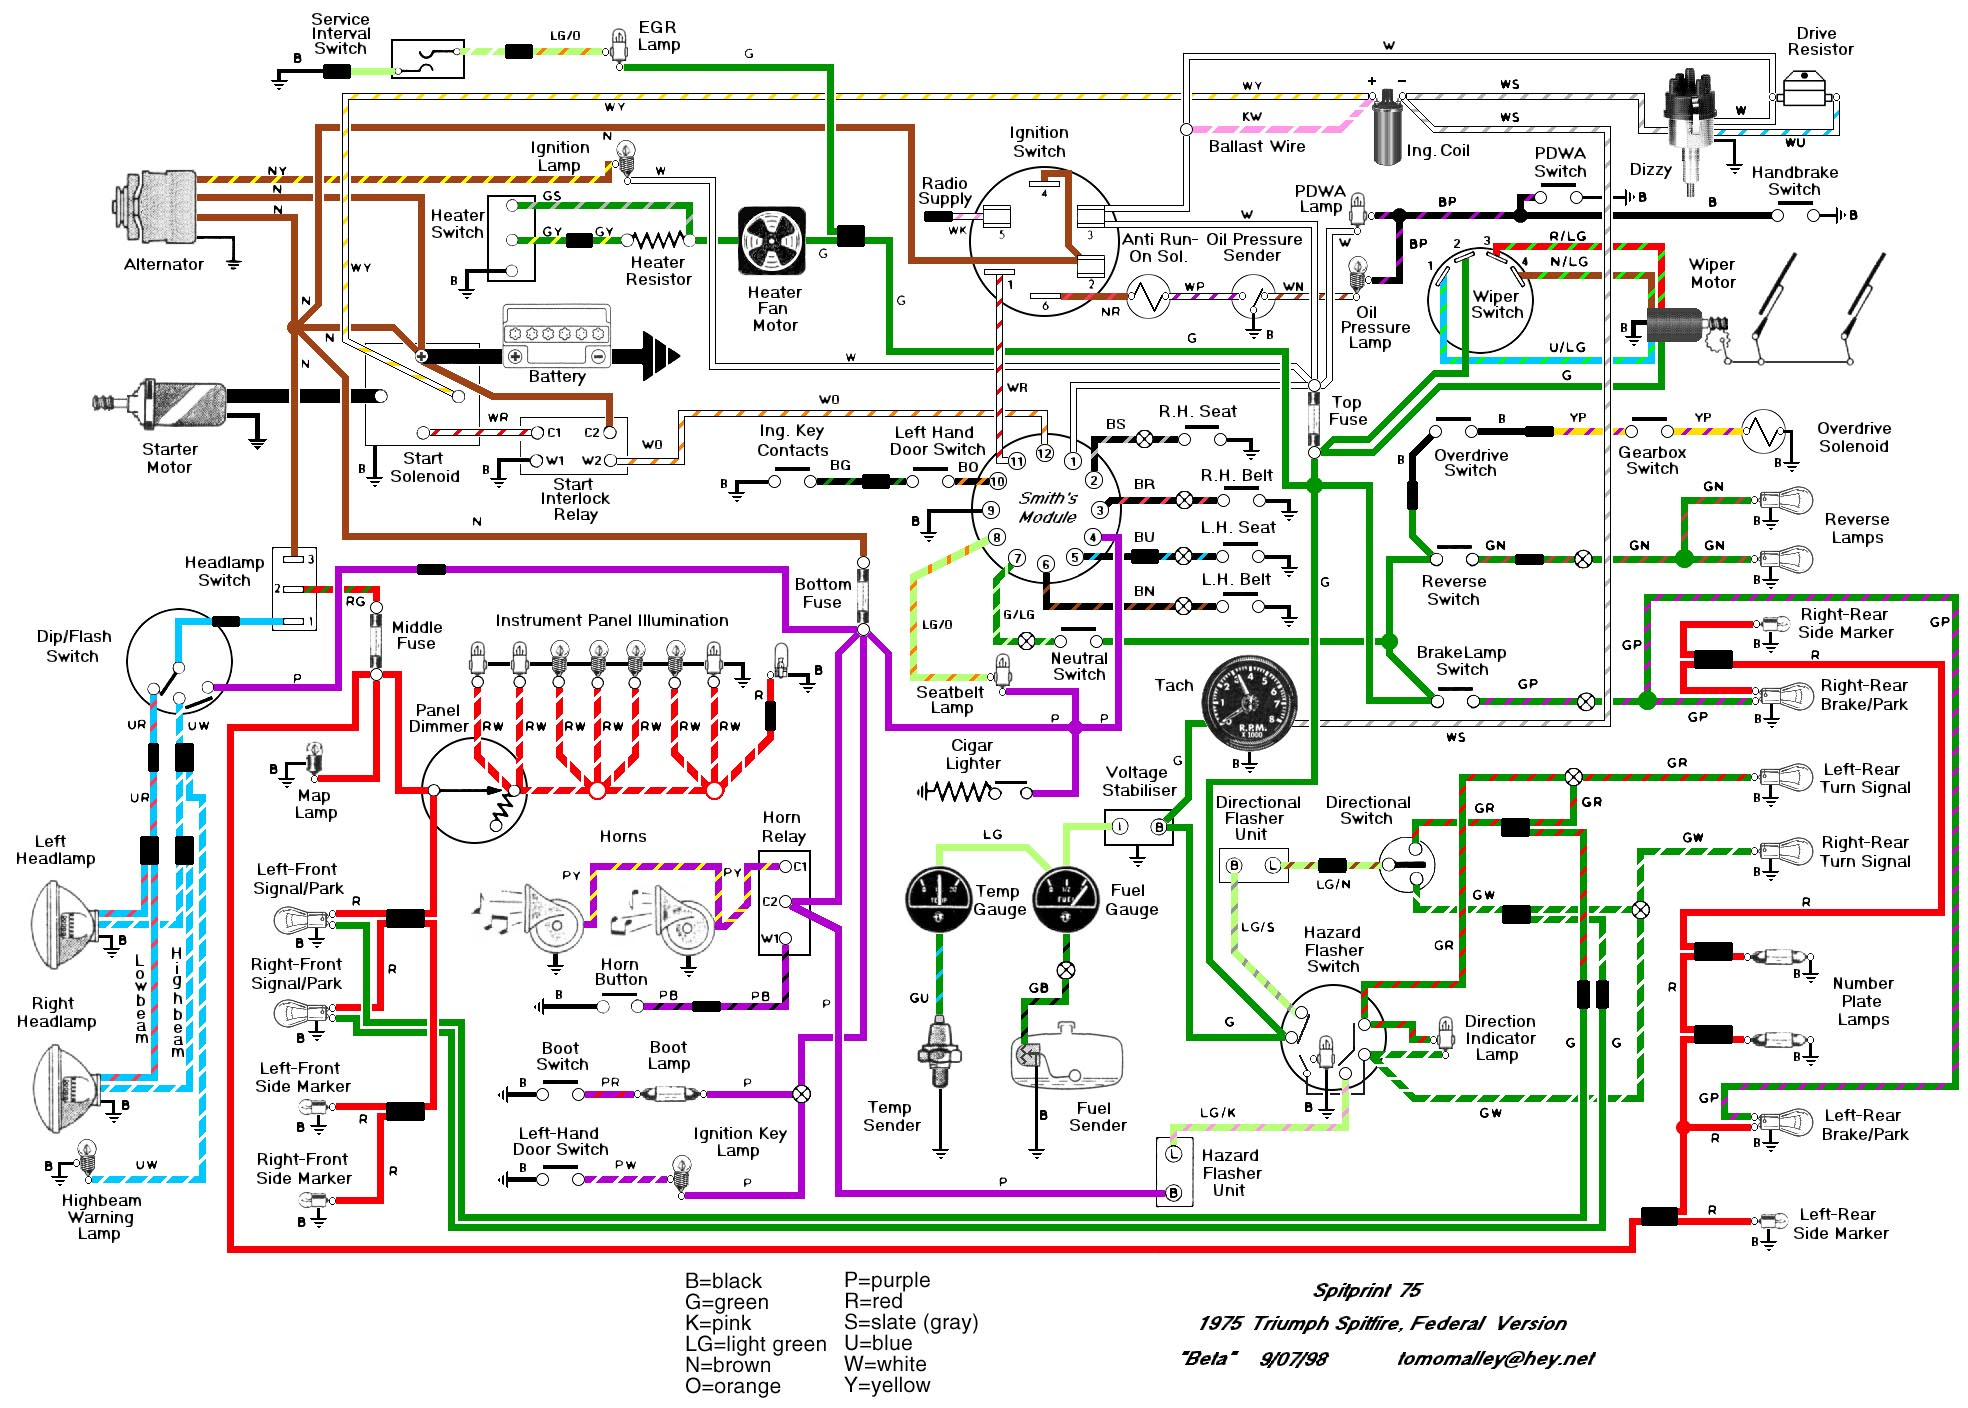 Wiring Diagram For A Car Free Download | Wiring Diagram